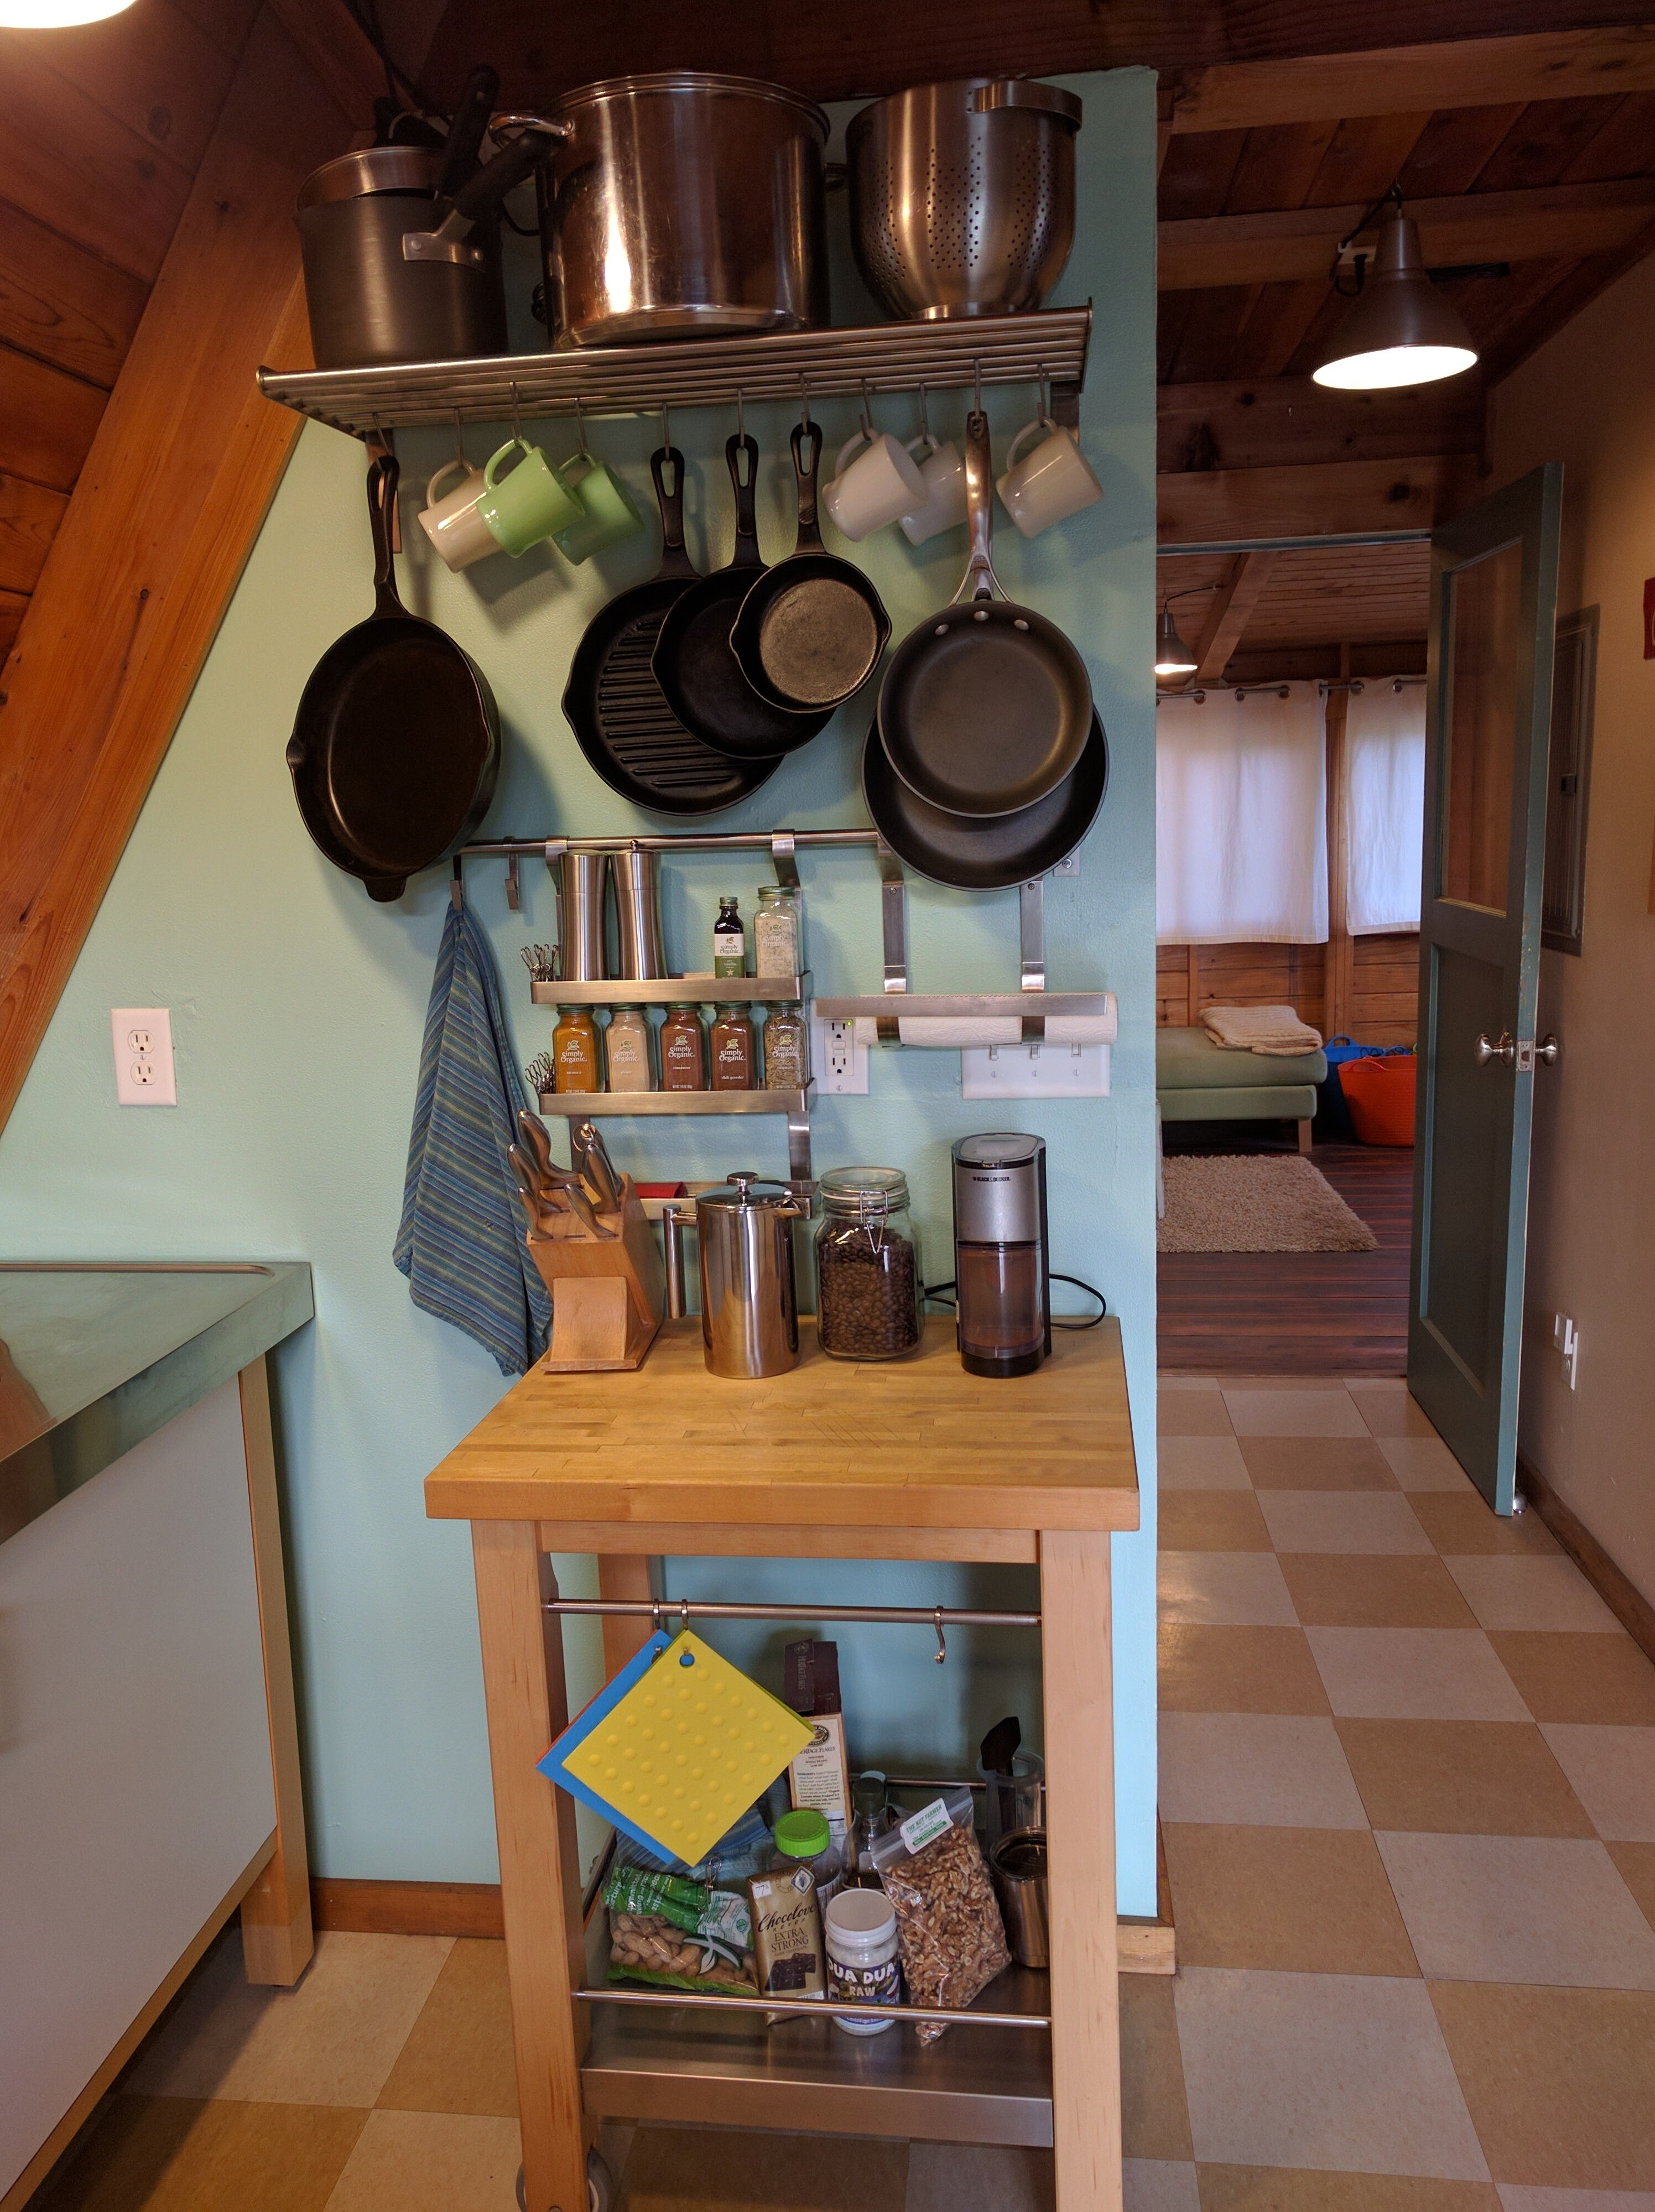 Plenty of cookware including French press coffee and cast iron pans.